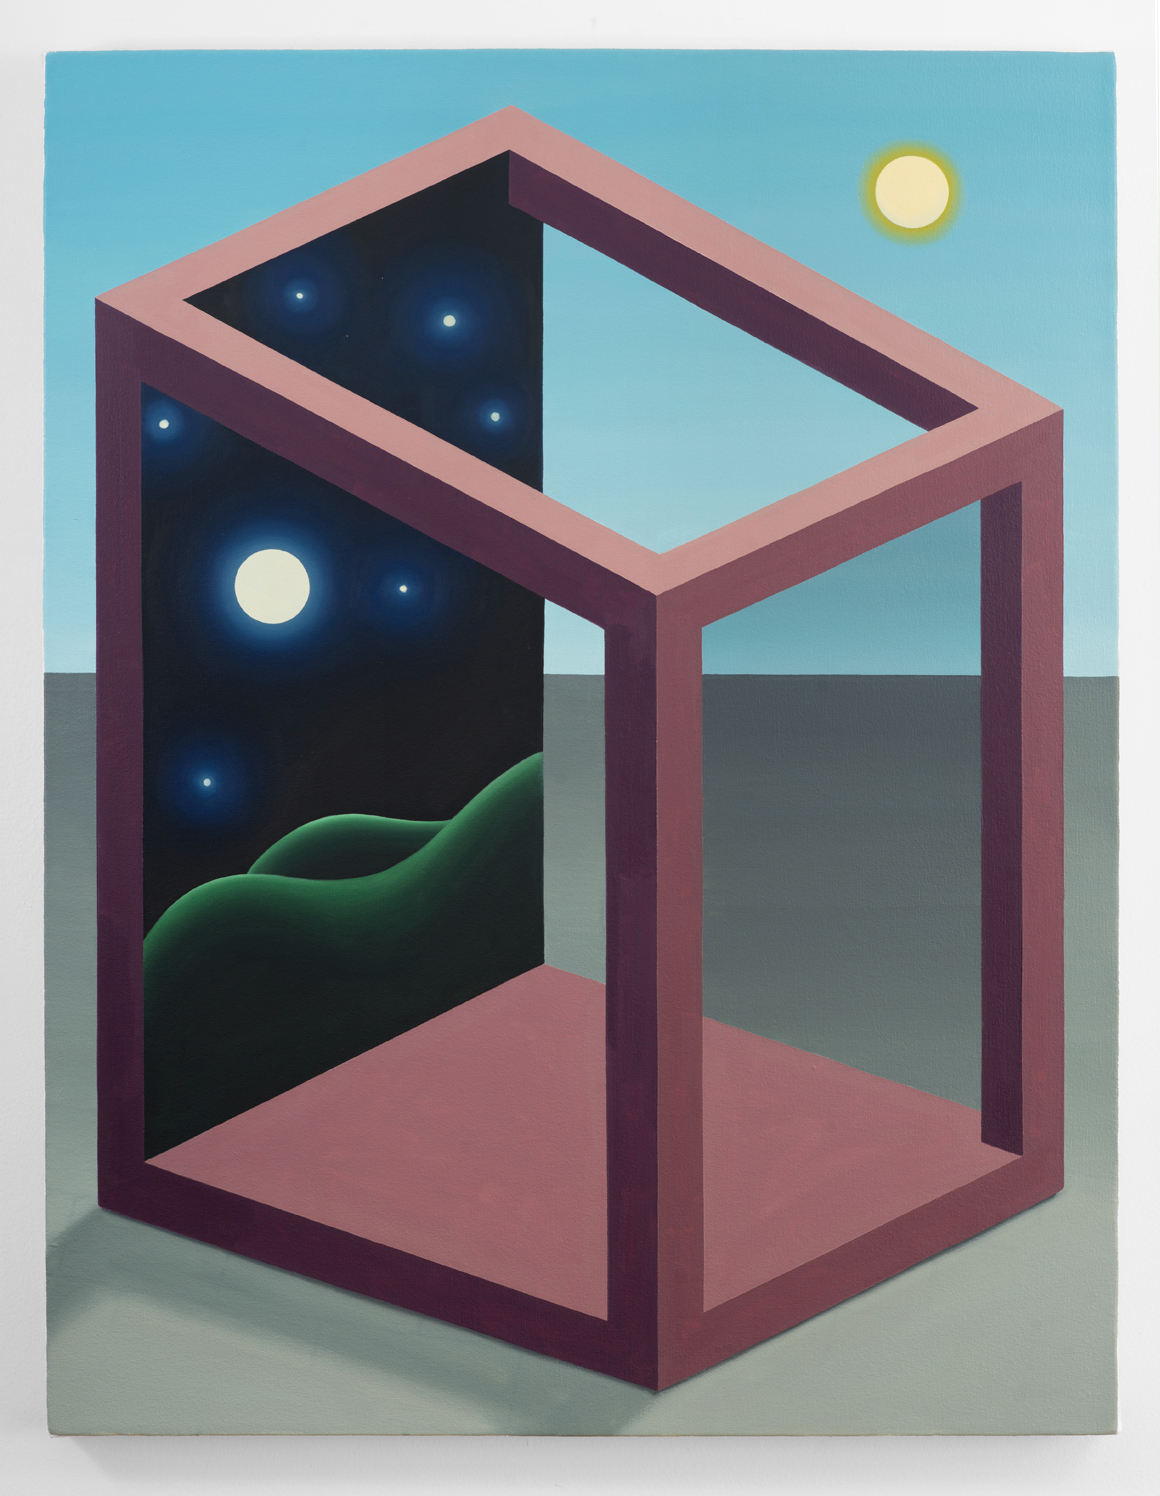 "<p><span class=""name"">Emily Ludwig Shaffer</span><br><em>Shadow box moon back</em><span class='media'>Oil on canvas</span>36 x 28 in (91.4 x 71.1 cm)<br>2018<br></p>"